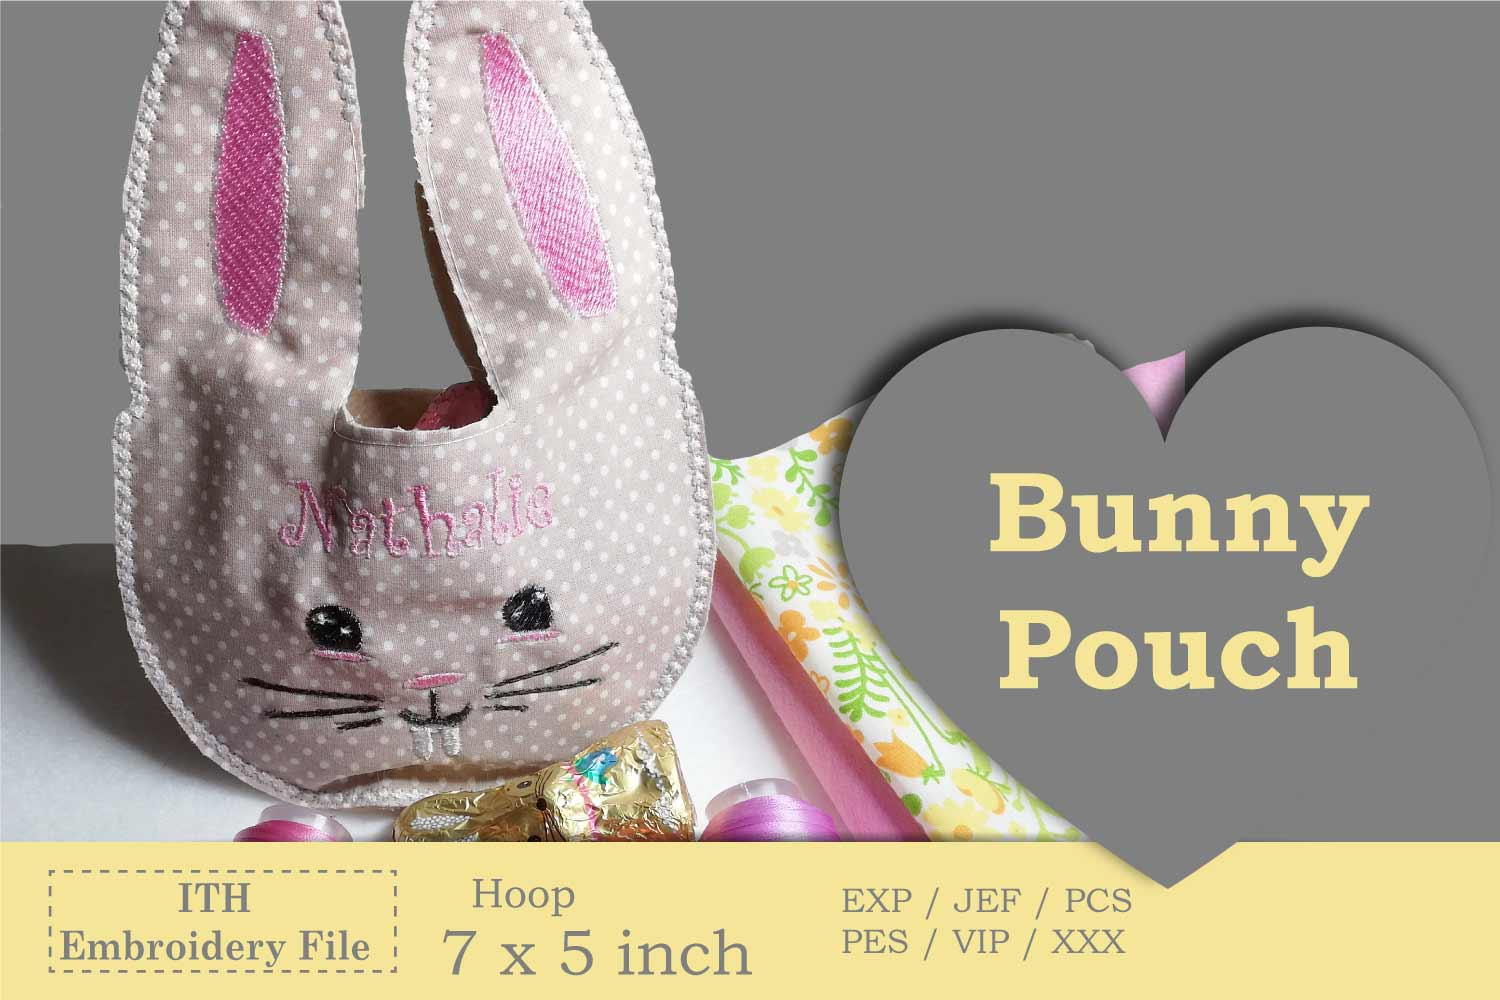 ITH - Bunny Pouch - Great idea for last minute gift example image 2